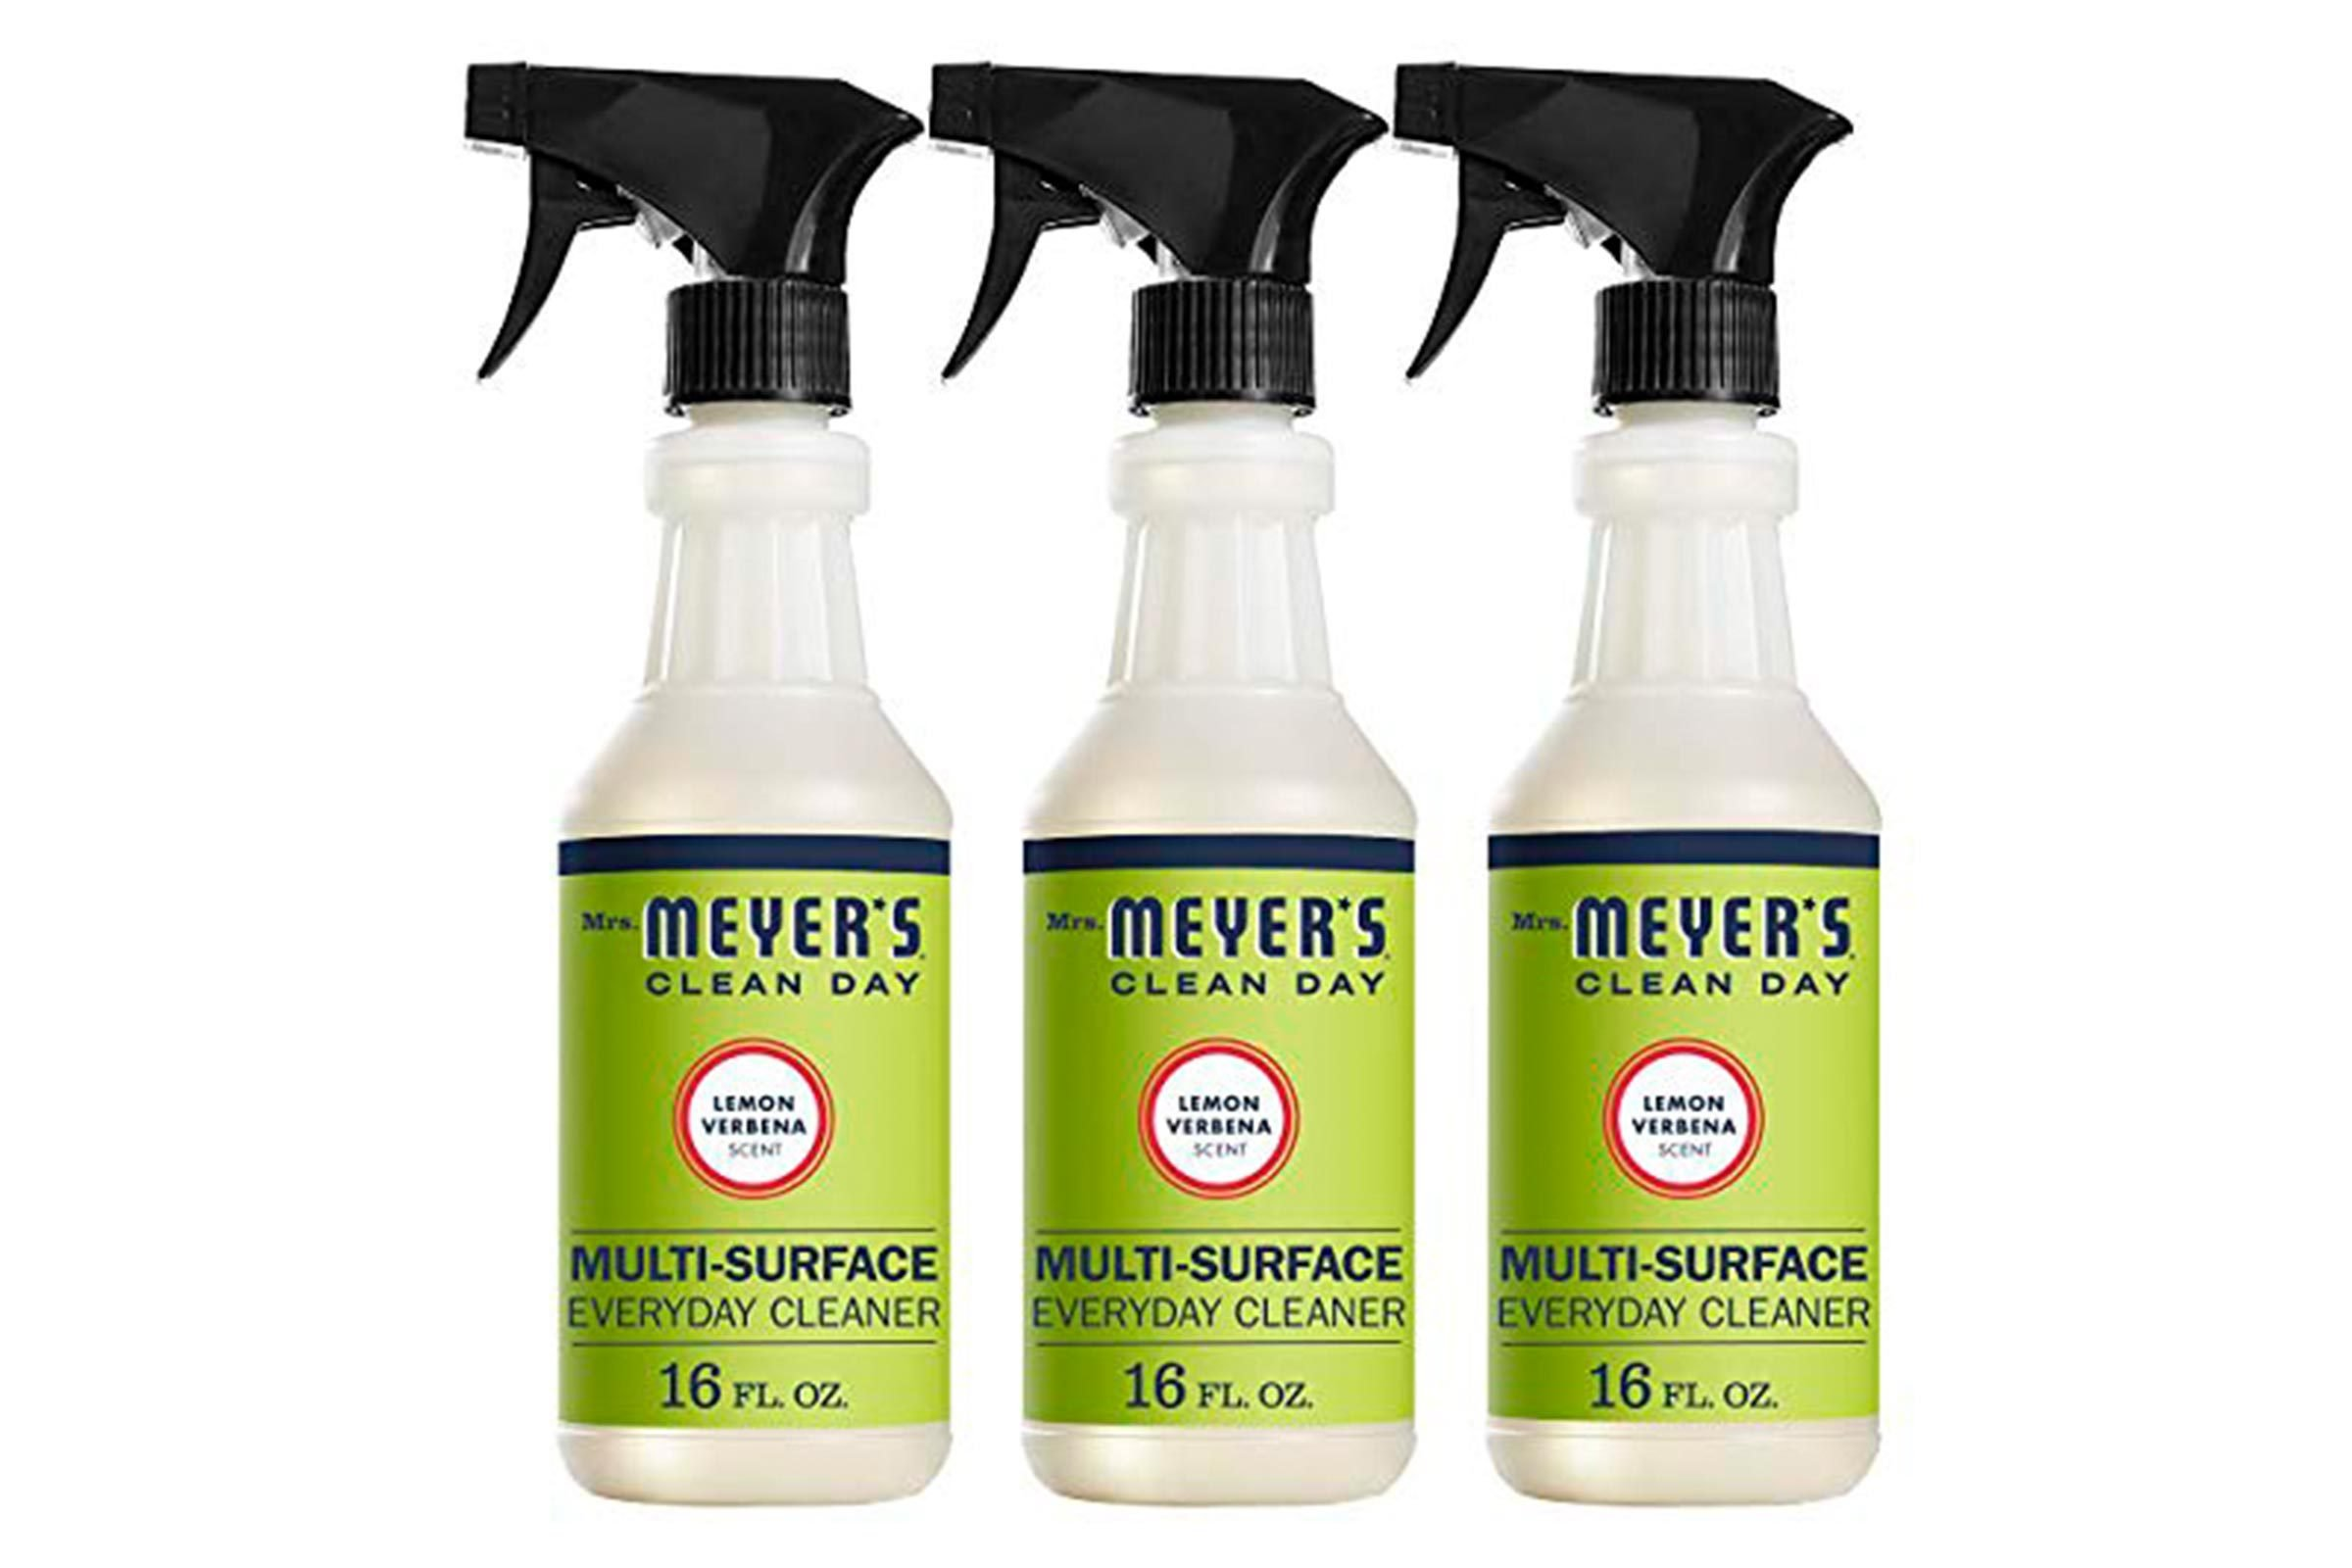 meyers multi-surface cleaner